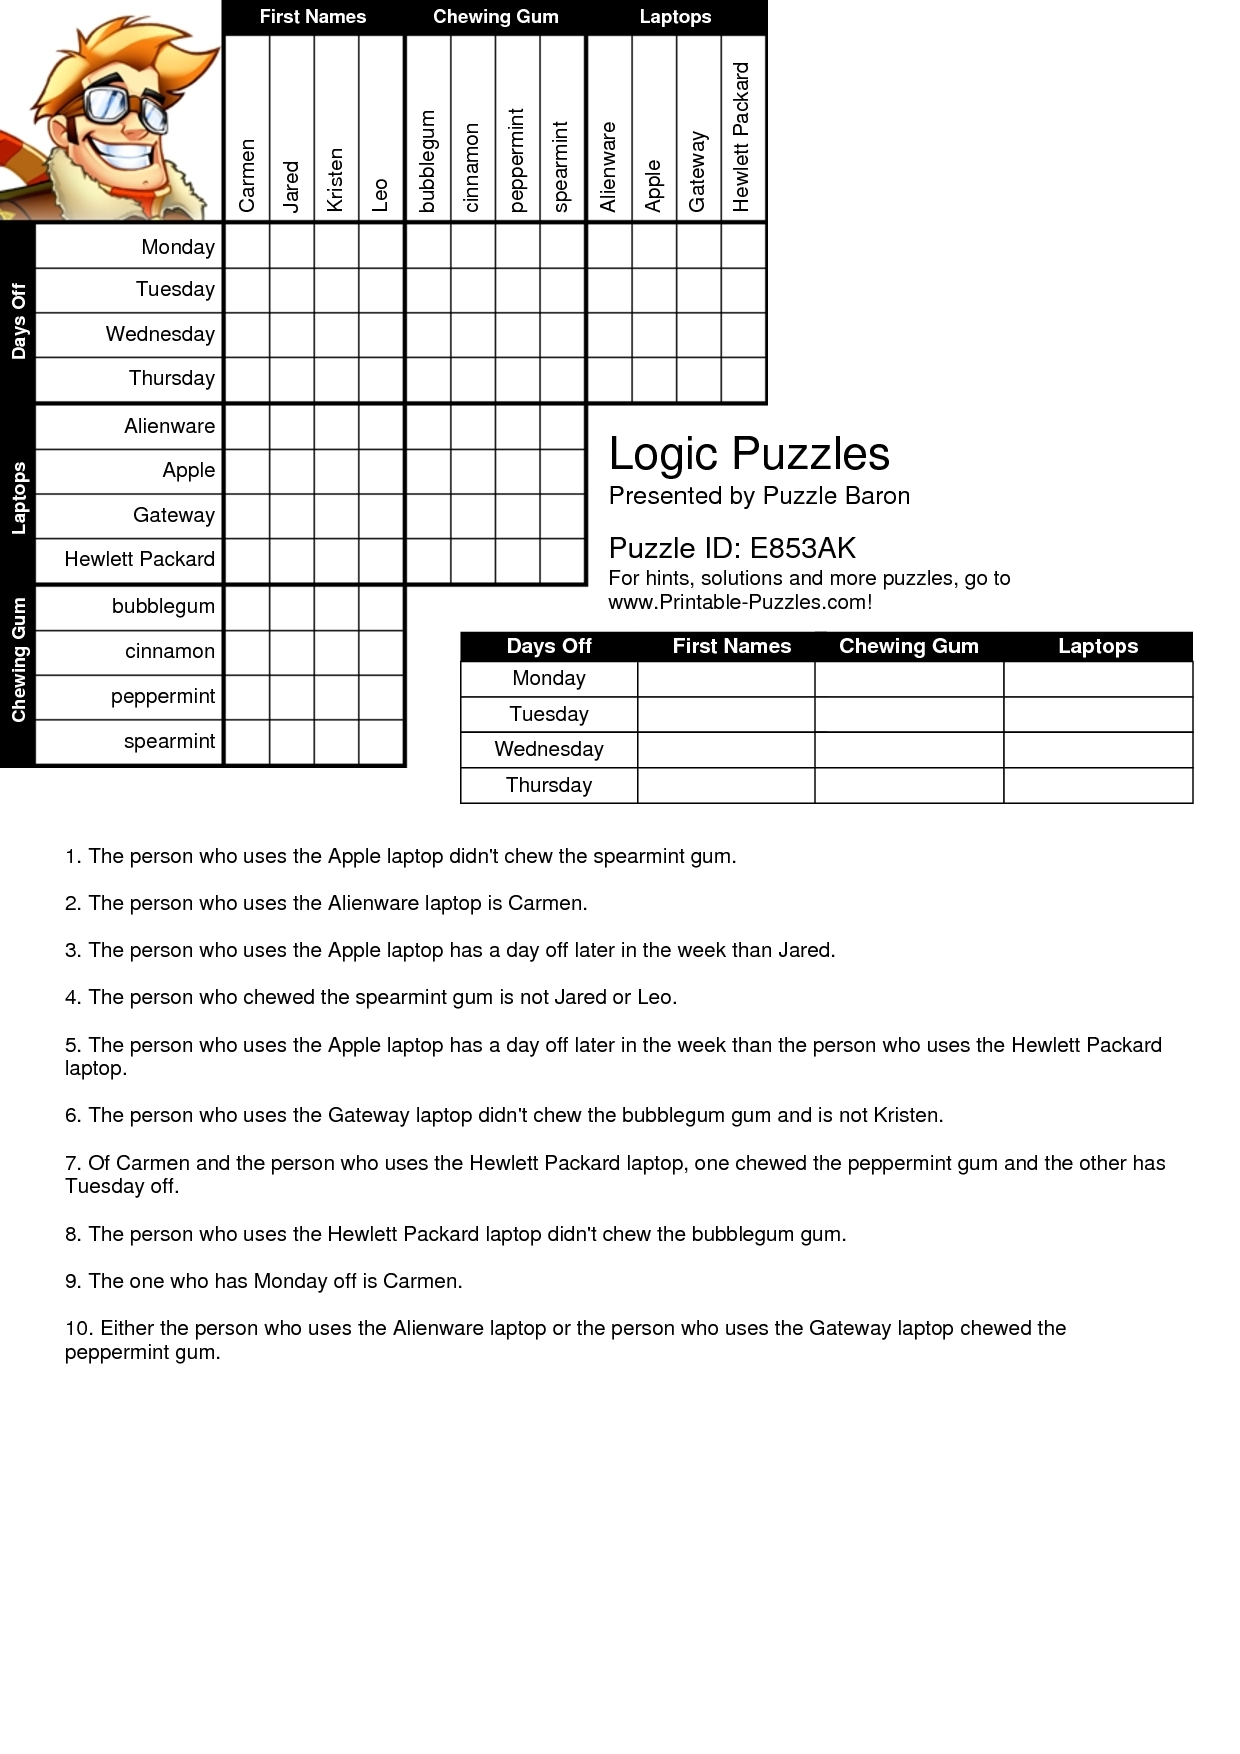 Logic Grid Puzzles Printable (78+ Images In Collection) Page 2 - Printable Logic Puzzles Baron